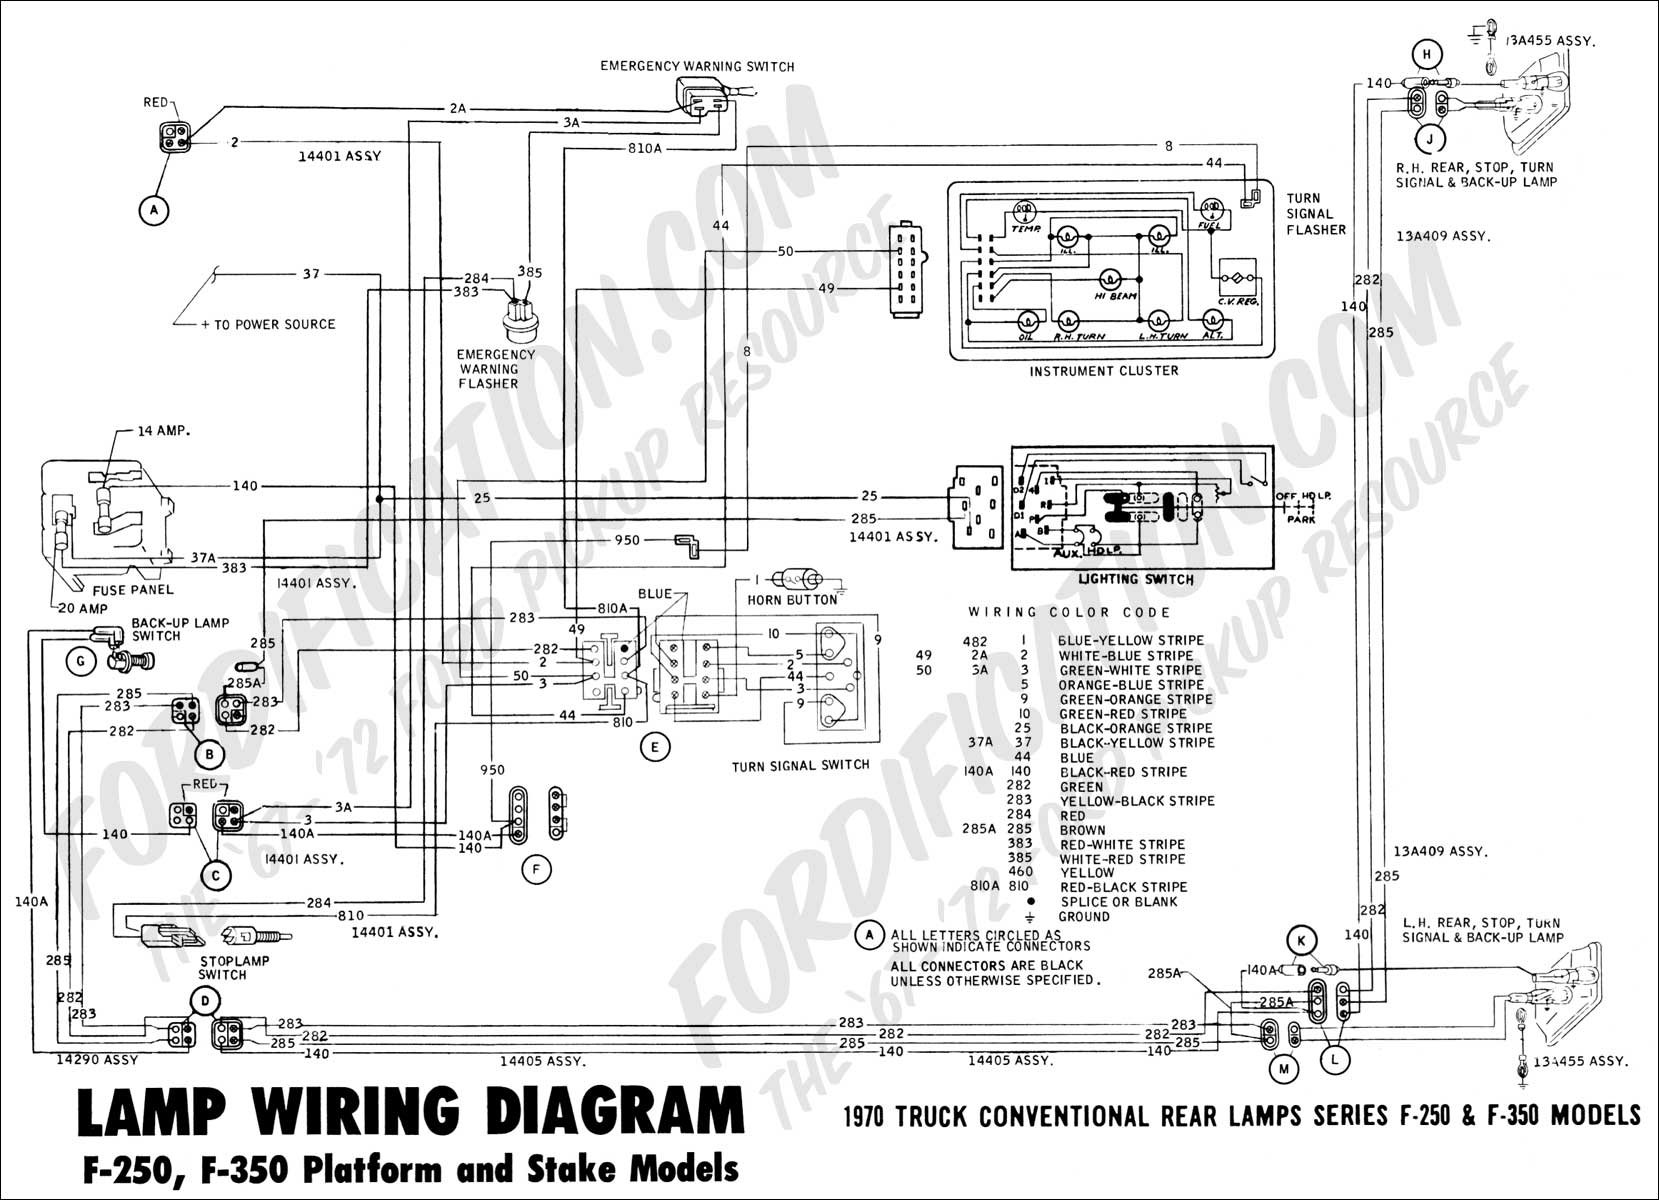 Wiring Diagram F Rearlamps on 2002 Chevy Monte Carlo Problems